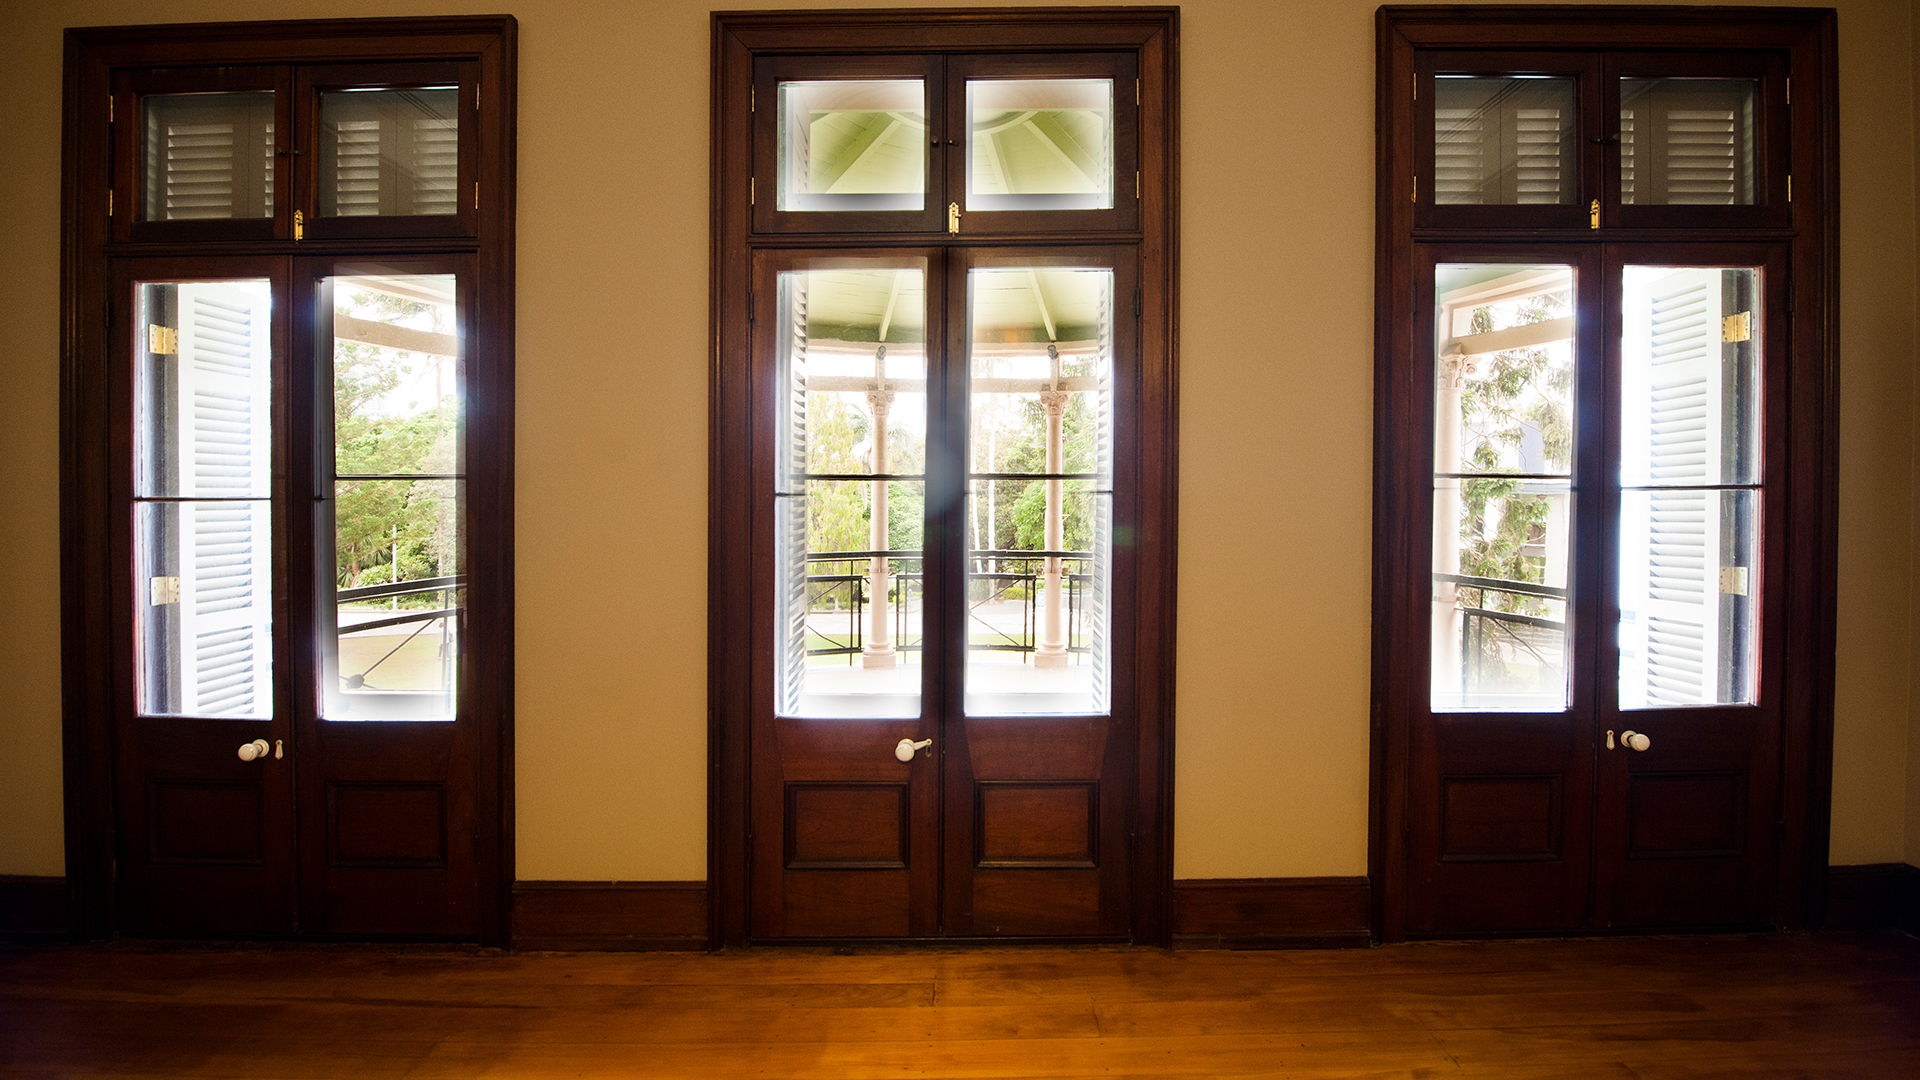 Indoor photo of Old Government House of 3 doors looking out to a covered, outdoor area